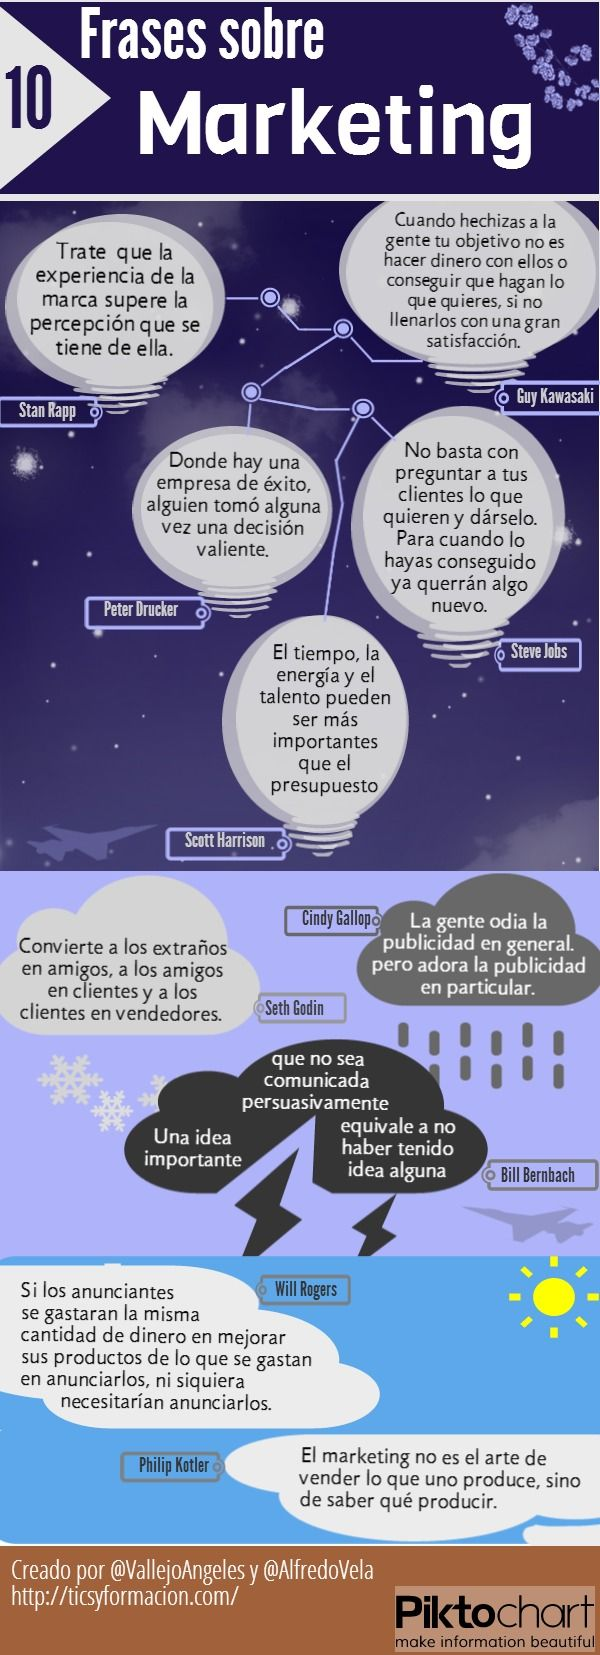 10 frases célebres sobre Marketing #infografia #infographic #citas #quotes